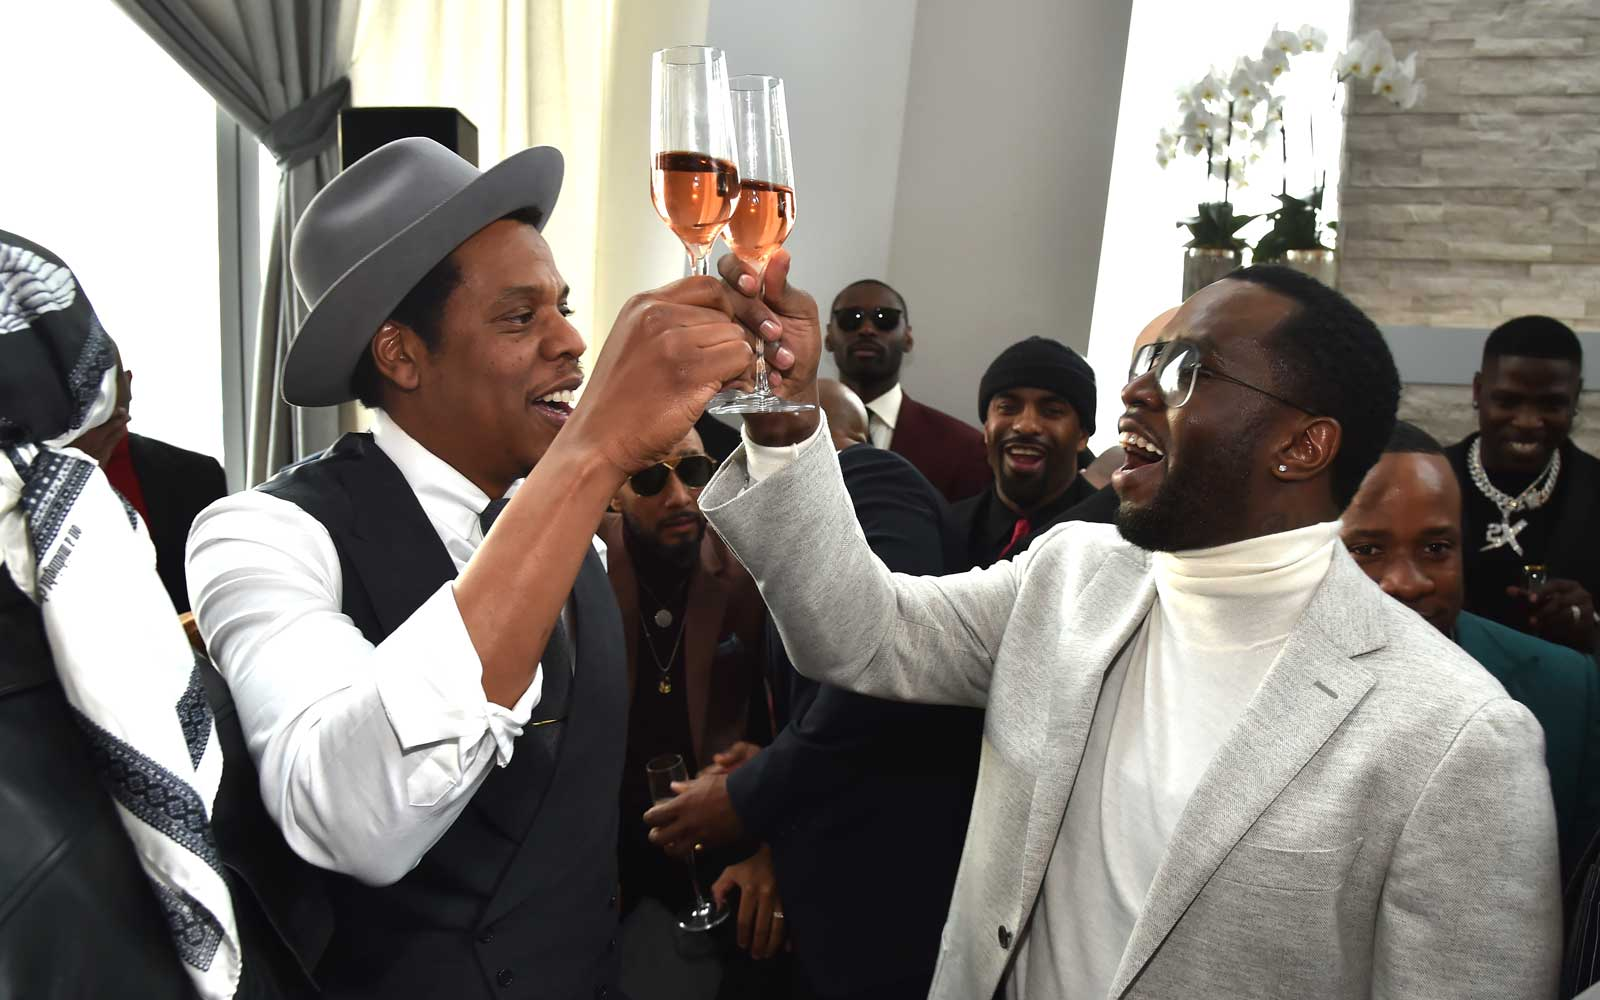 Jay-Z and P Diddy Toast Champagne